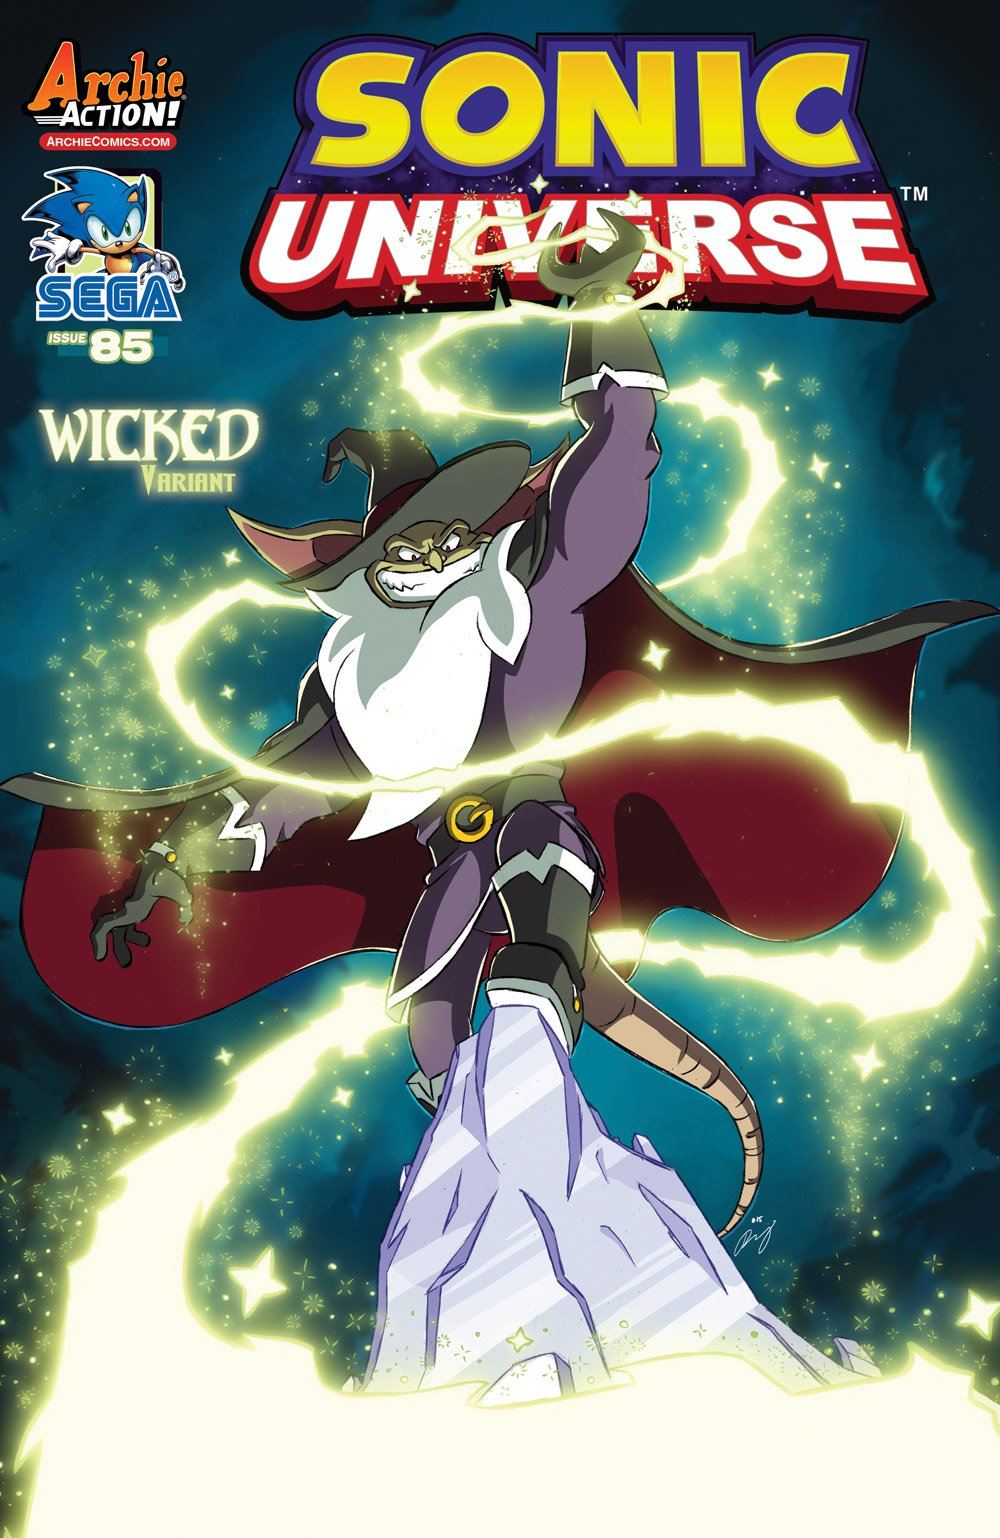 Sonic Universe 085 (July 2016) (Wicked variant)